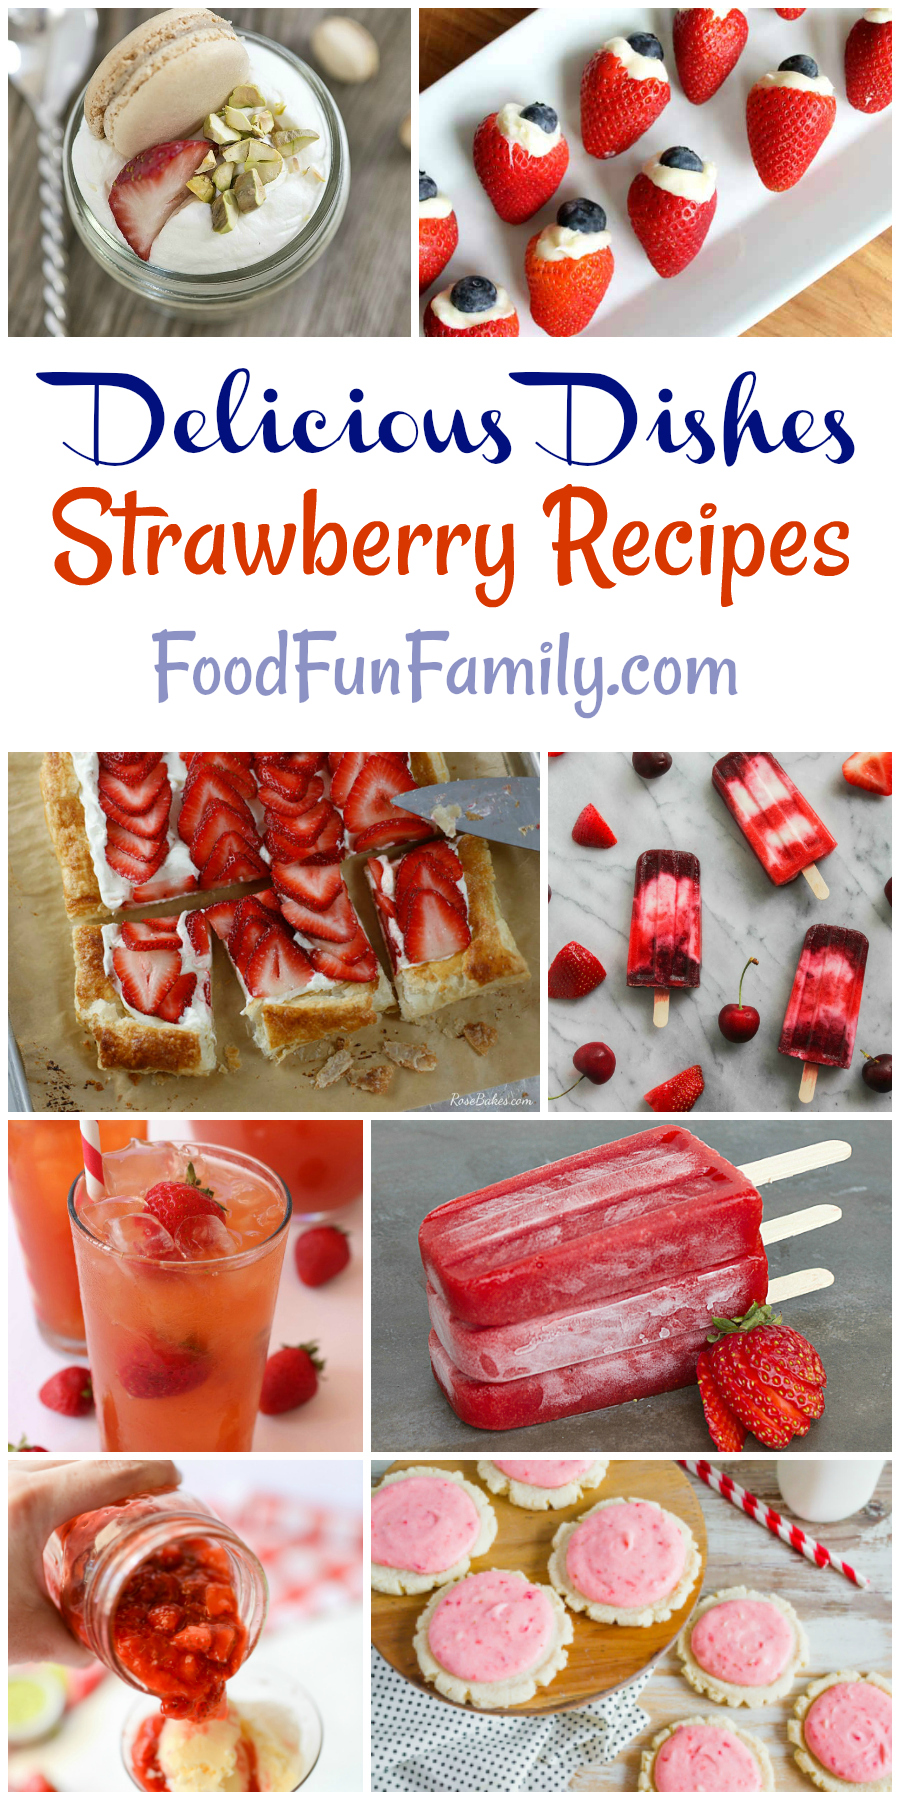 Summer time strawberry recipes - from berrylicious frozen treats to baking with strawberries. So many tasty dishes with strawberries!